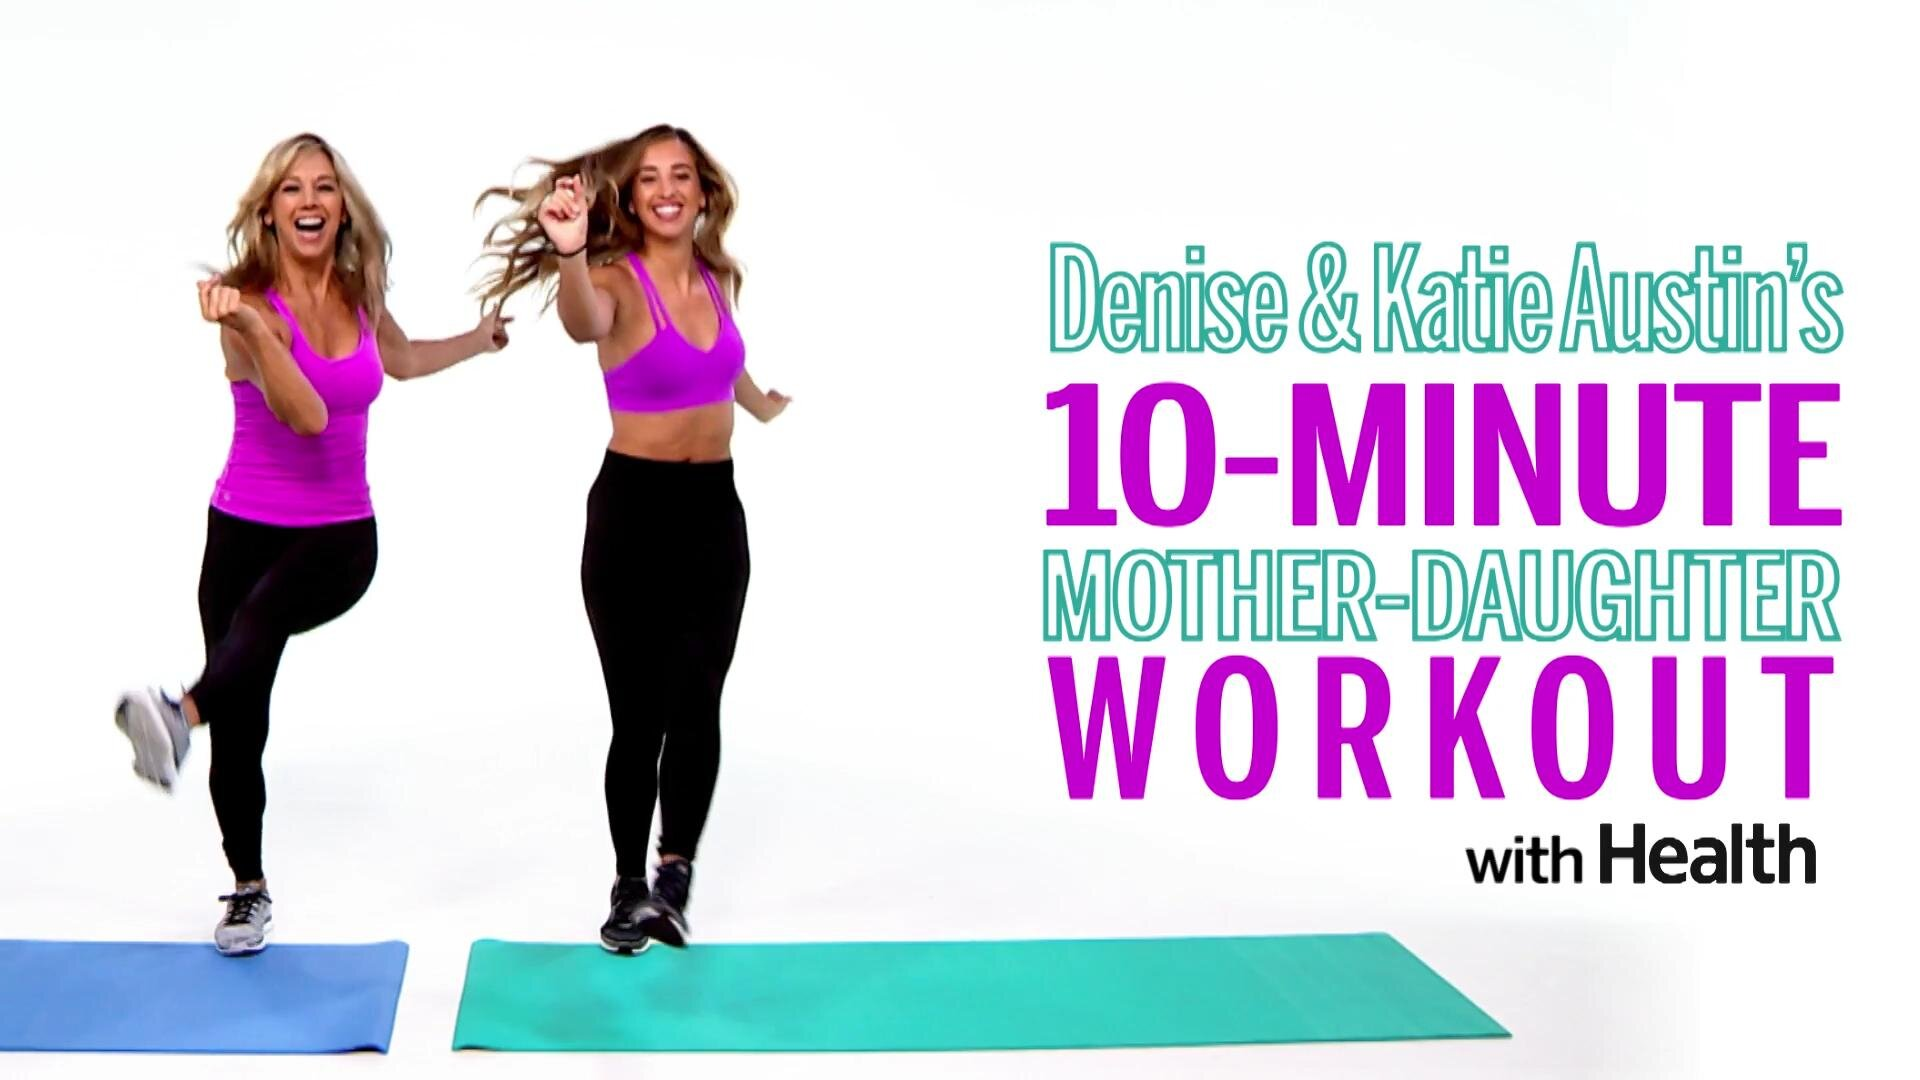 The 10-minute partner workout